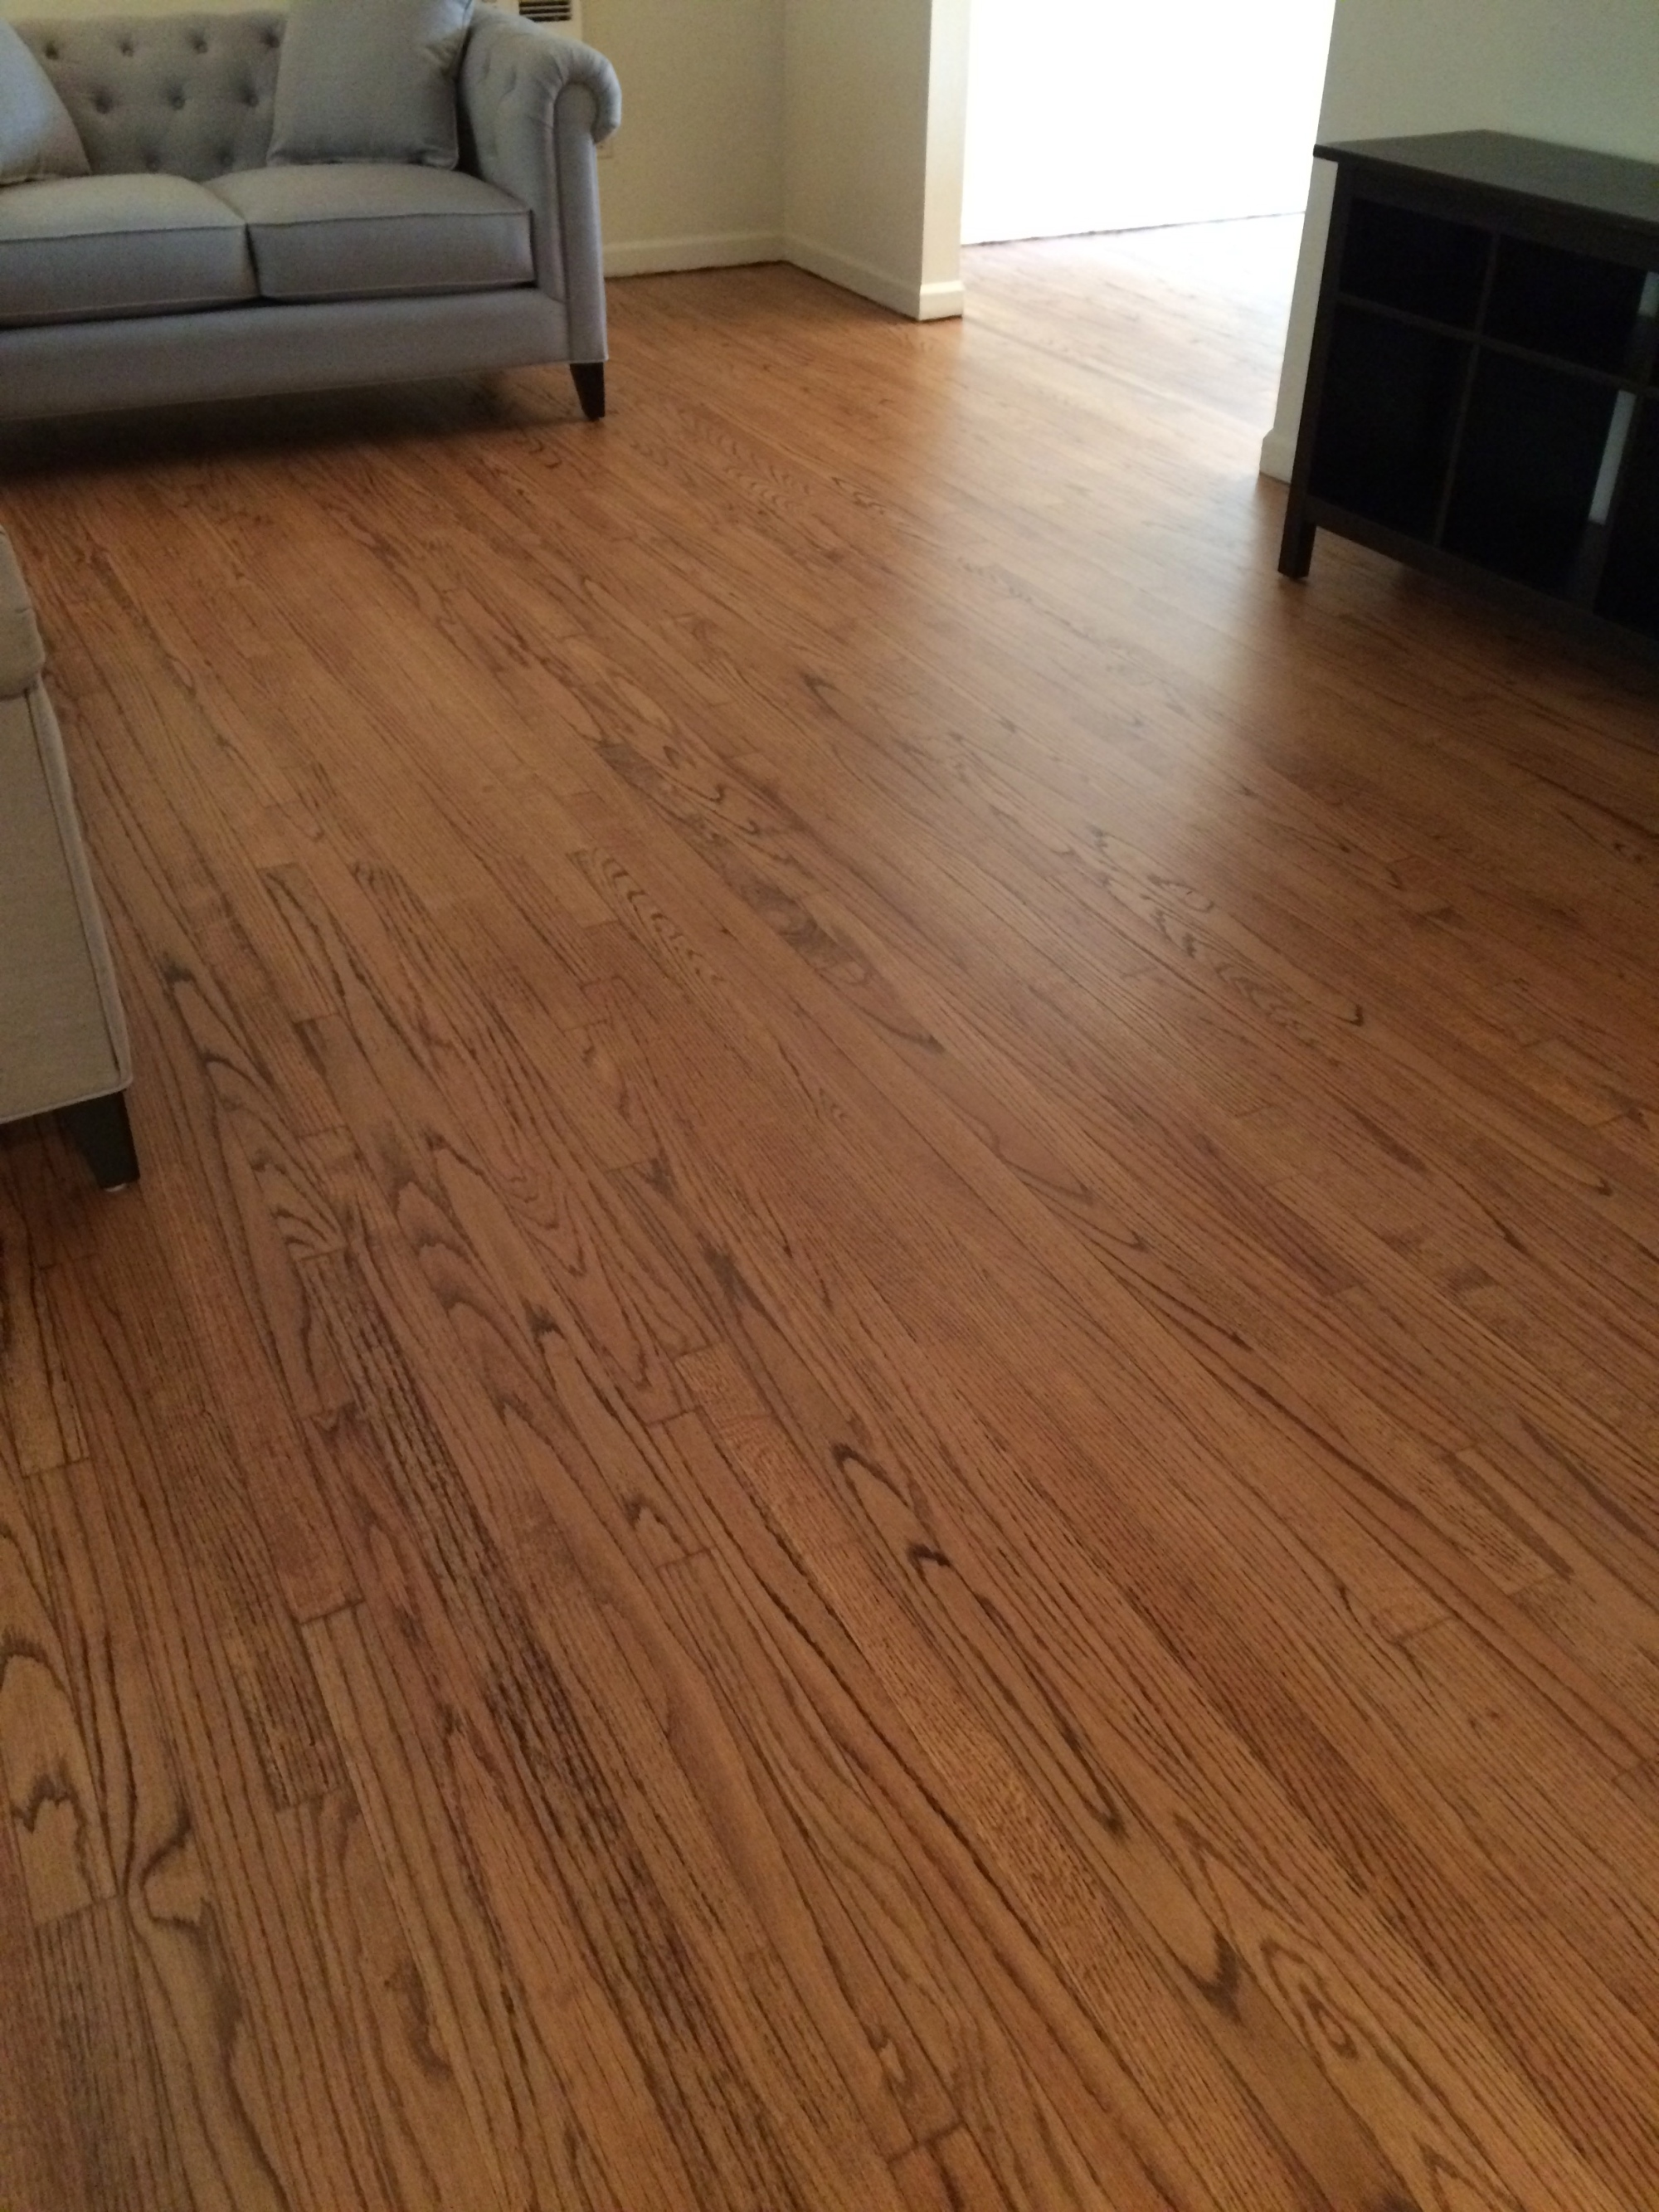 Pulling Staples Out Of Hardwood Floors How To Remove Dark